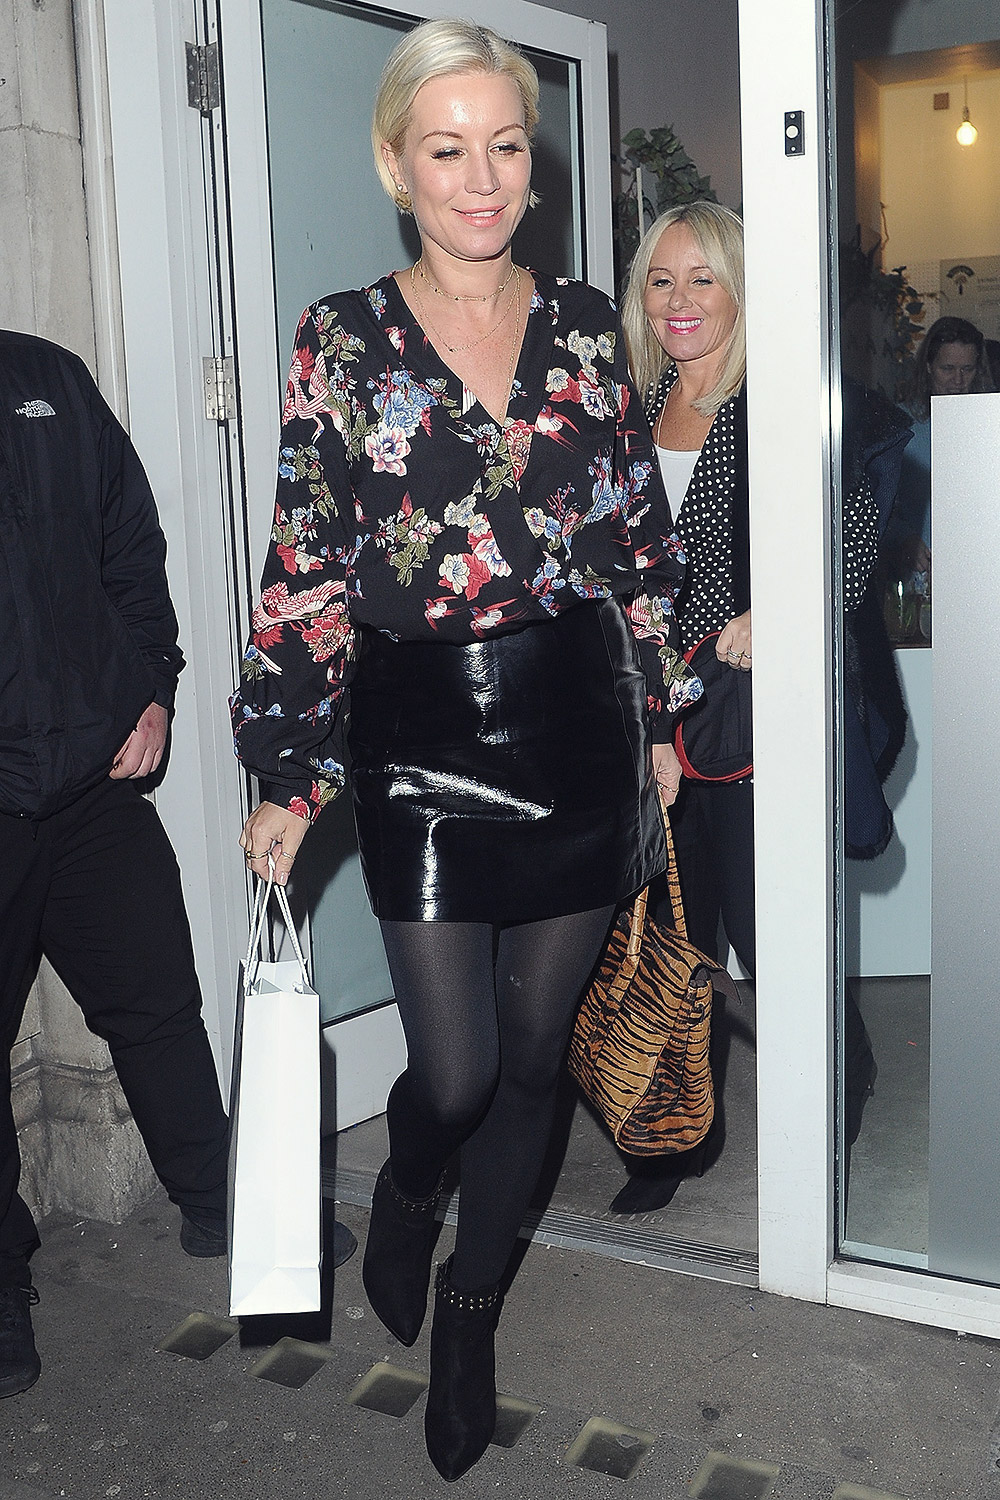 Denise Van Outen arriving at Hello Love Robinsons event